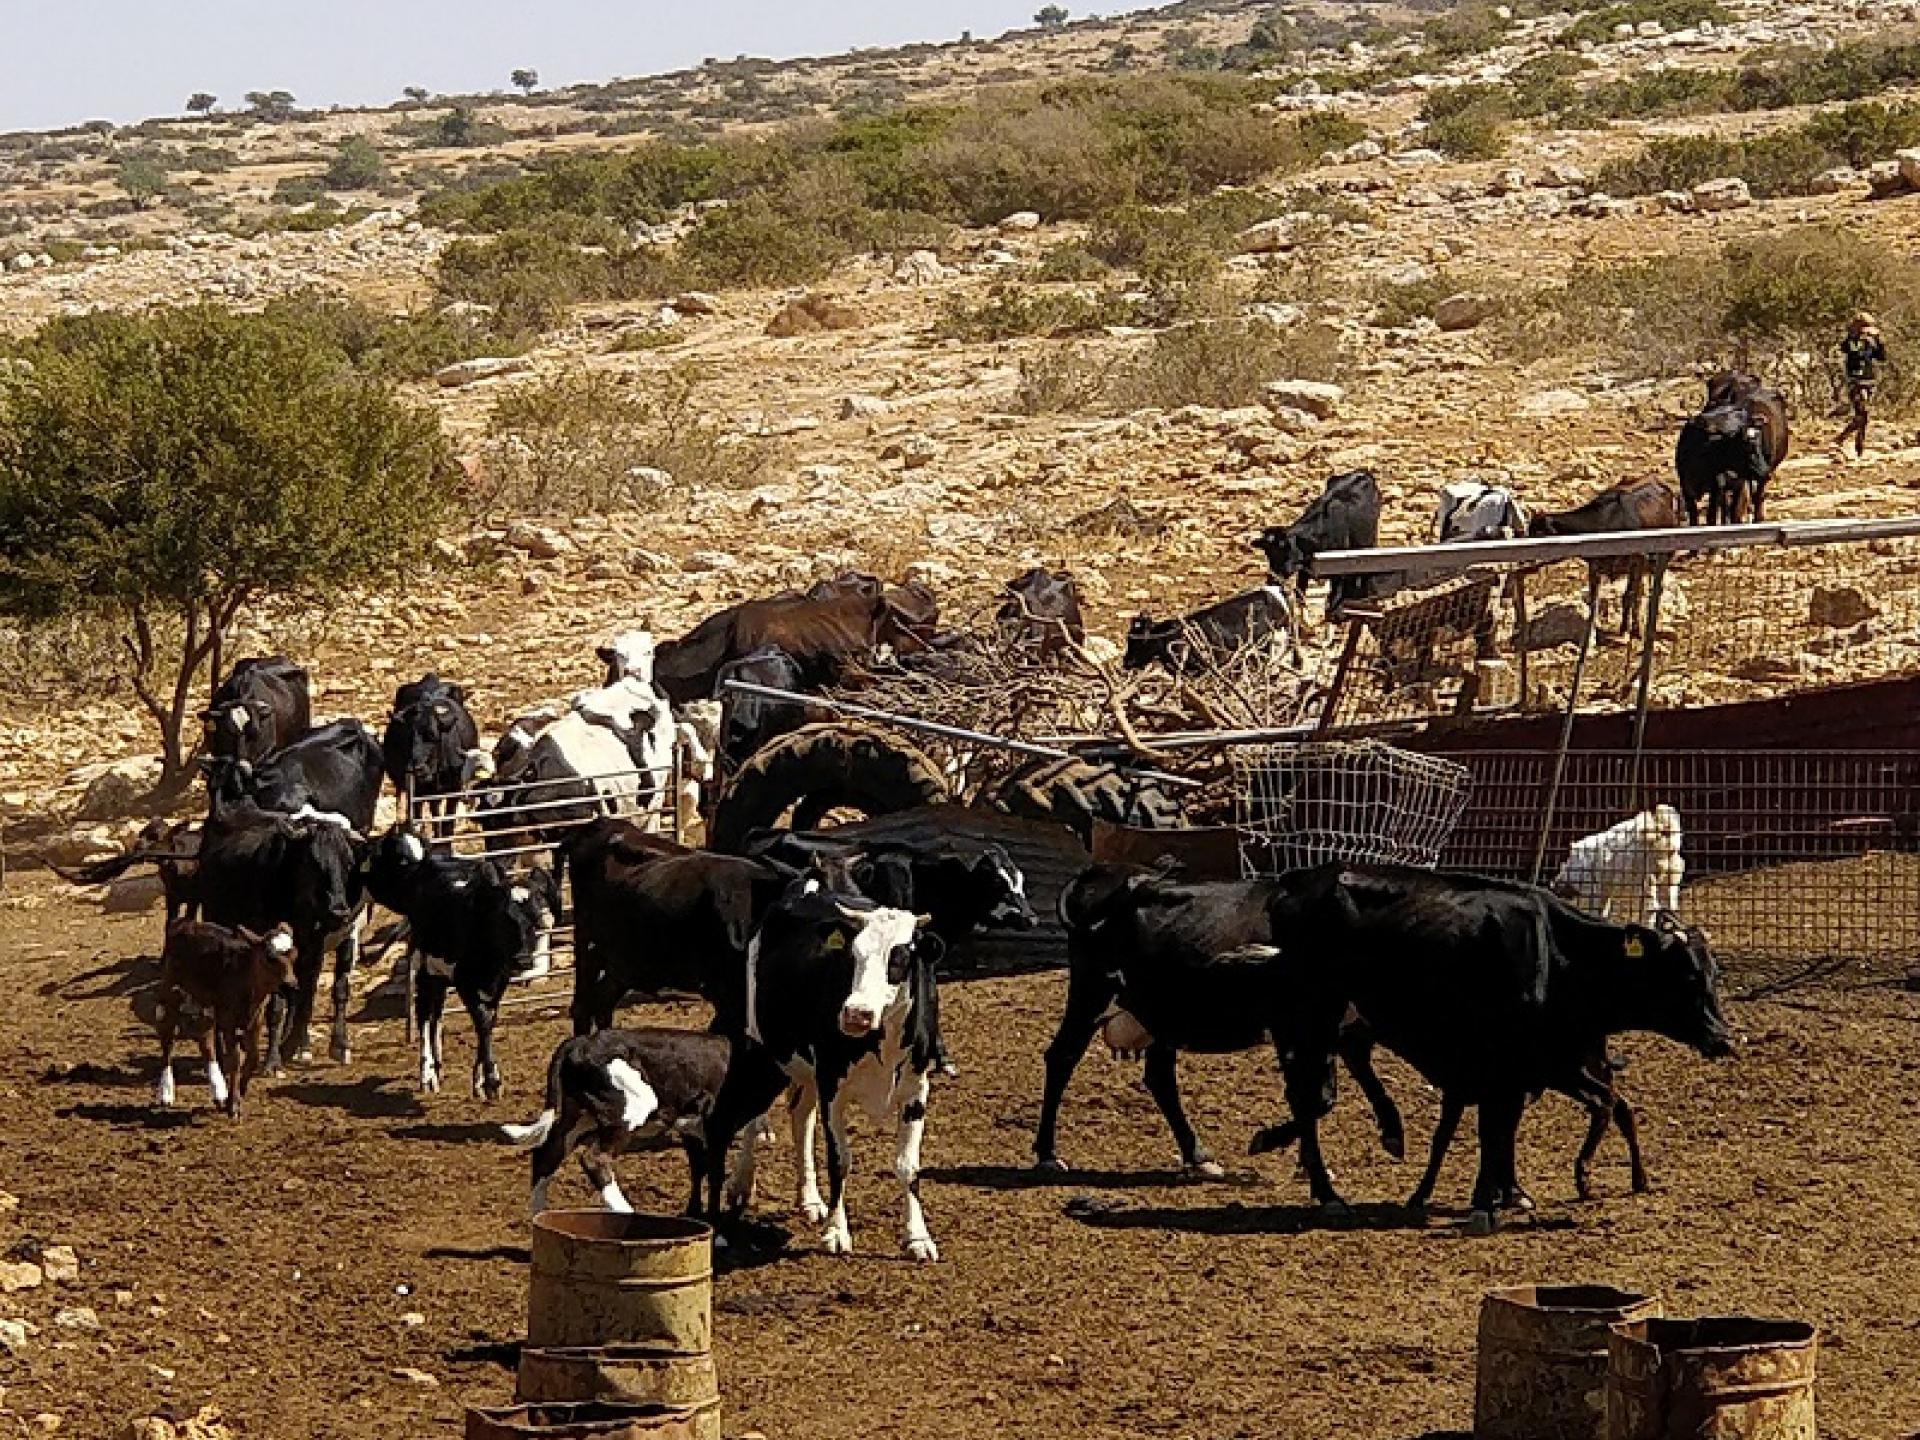 Yarza, Jordan Valley:  Bringing in the flock before the expulsion.